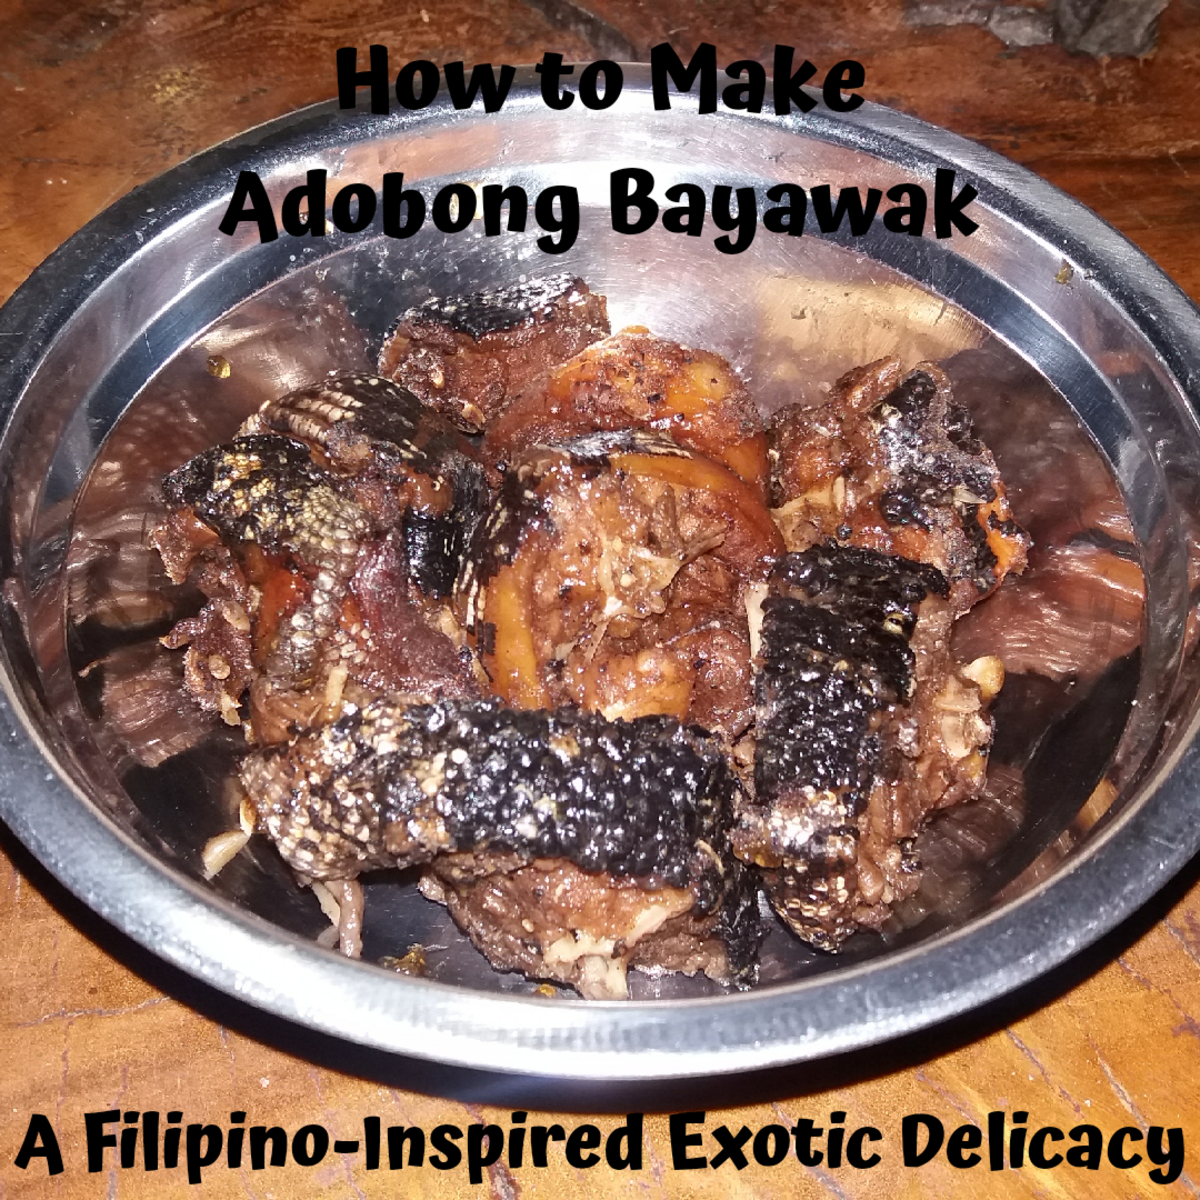 How to Make Adobong Bayawak: A Filipino-Inspired Exotic Delicacy